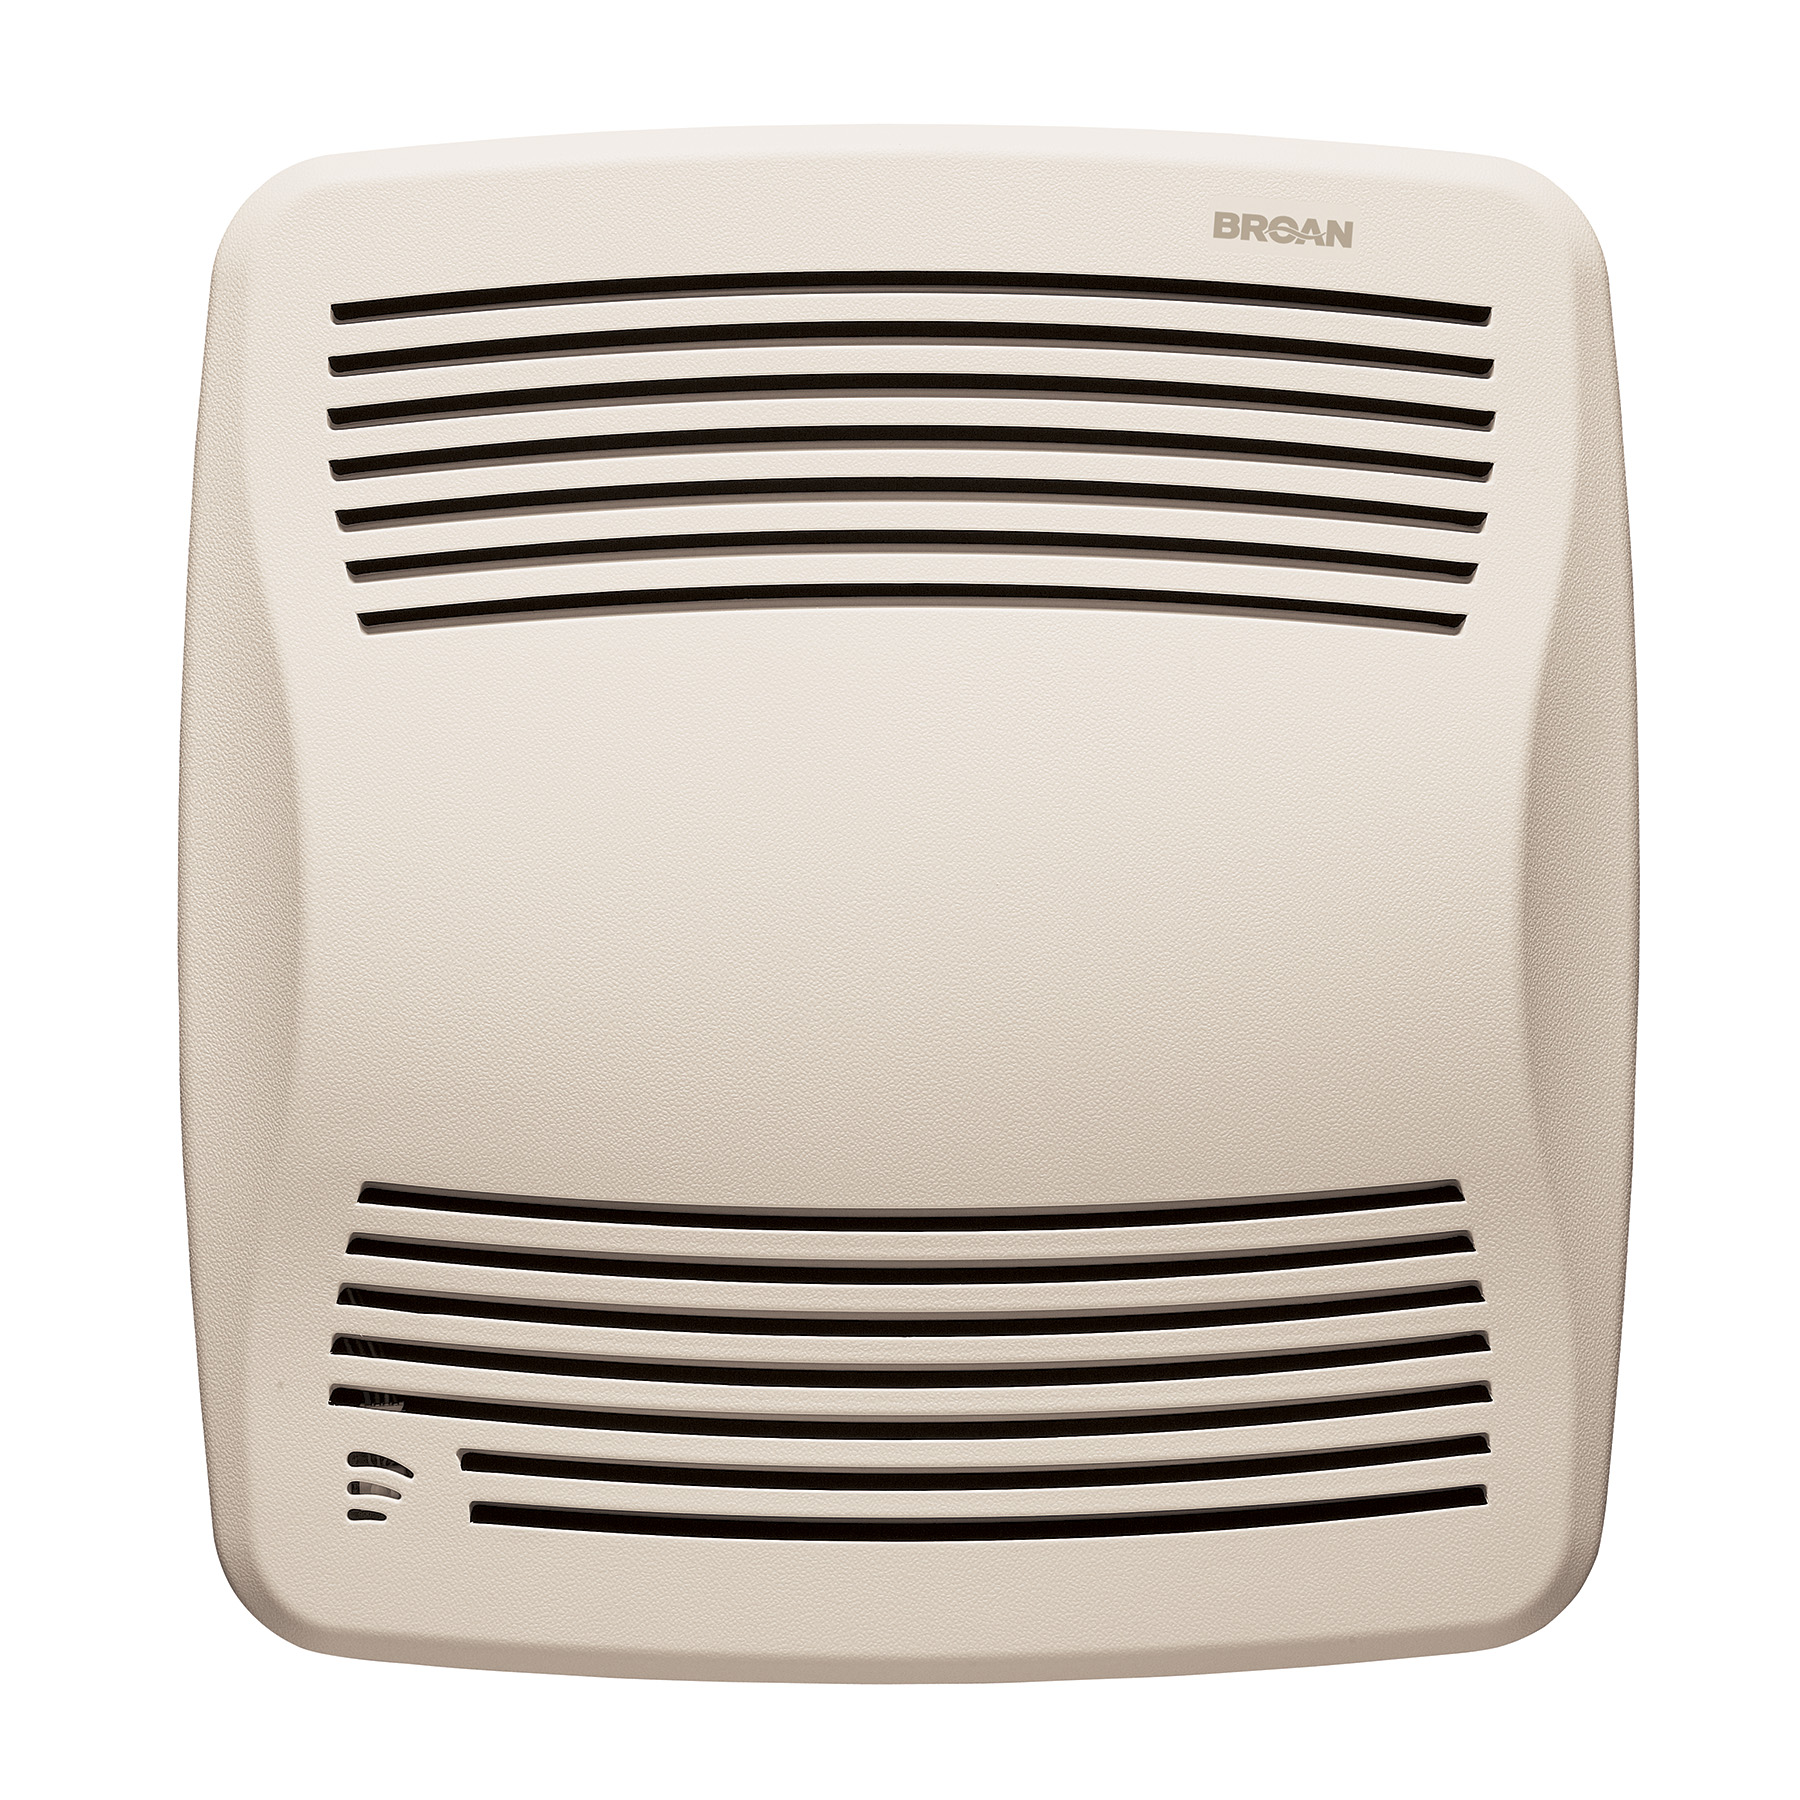 Broan® 110 CFM Humidity Sensing Exhaust Vent Fan w/ White Grille, ENERGY STAR®